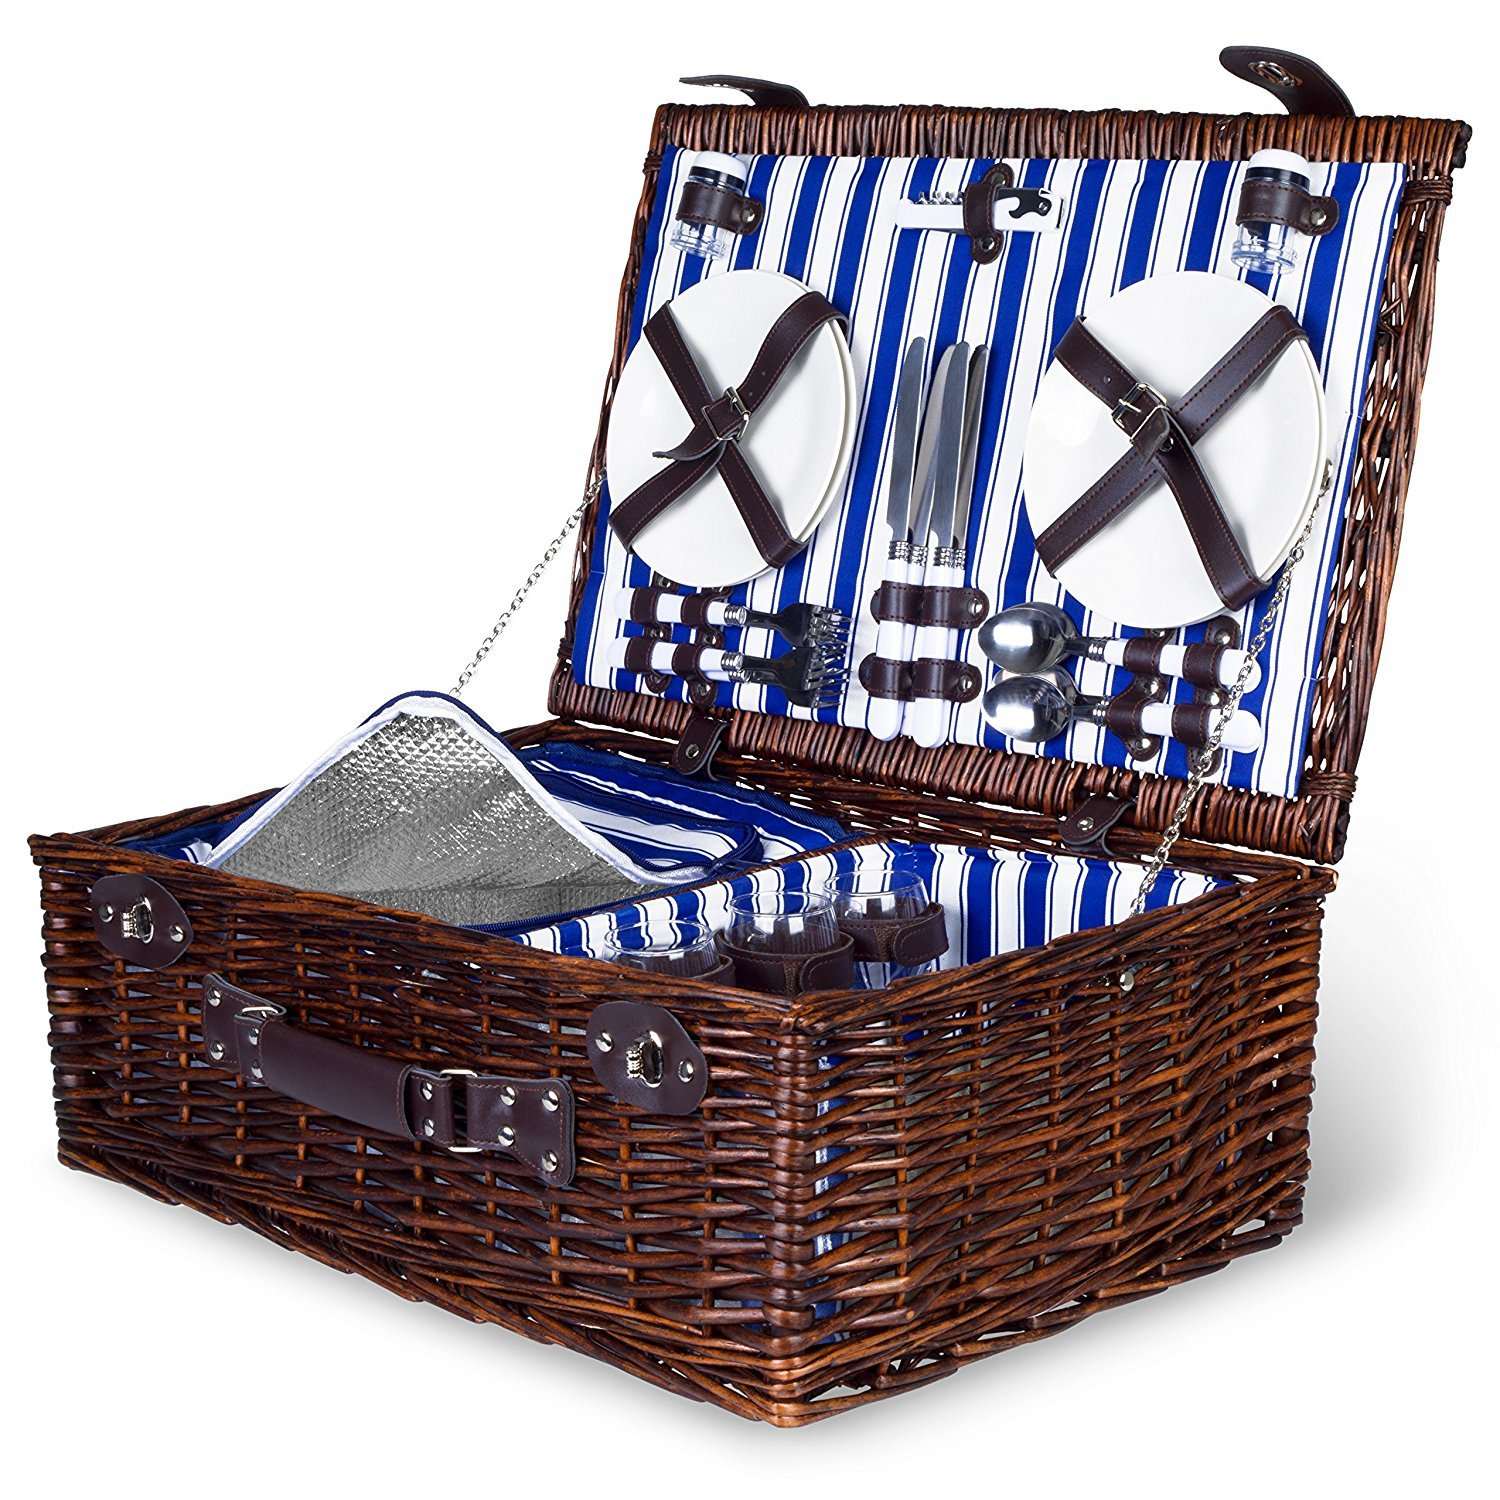 4 Person Wicker Picnic Basket: Deluxe Woven Willow Vintage Hamper Set - Porcelain Plates, Stainless Steel Silverware, Opener and Real Glass Wine Glasses; Free Cold Storage Bag; Extra-Large 22 X 15 in.